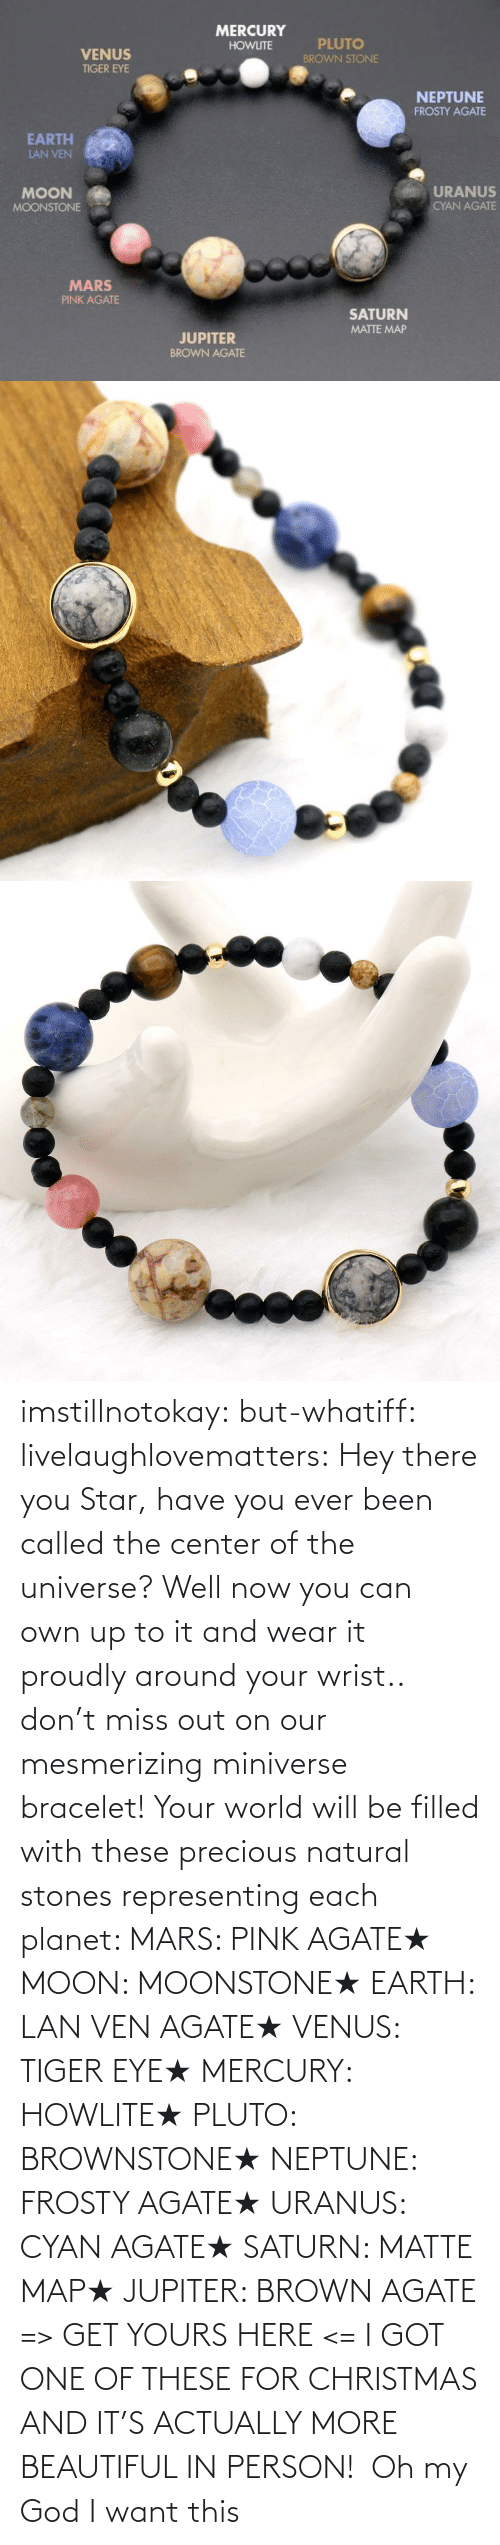 got: imstillnotokay:  but-whatiff: livelaughlovematters:  Hey there you Star, have you ever been called the center of the universe? Well now you can own up to it and wear it proudly around your wrist.. don't miss out on our mesmerizing miniverse bracelet! Your world will be filled with these precious natural stones representing each planet:  MARS: PINK AGATE★ MOON: MOONSTONE★ EARTH: LAN VEN AGATE★ VENUS: TIGER EYE★ MERCURY: HOWLITE★ PLUTO: BROWNSTONE★ NEPTUNE: FROSTY AGATE★ URANUS: CYAN AGATE★ SATURN: MATTE MAP★ JUPITER: BROWN AGATE => GET YOURS HERE <=  I GOT ONE OF THESE FOR CHRISTMAS AND IT'S ACTUALLY MORE BEAUTIFUL IN PERSON!     Oh my God I want this